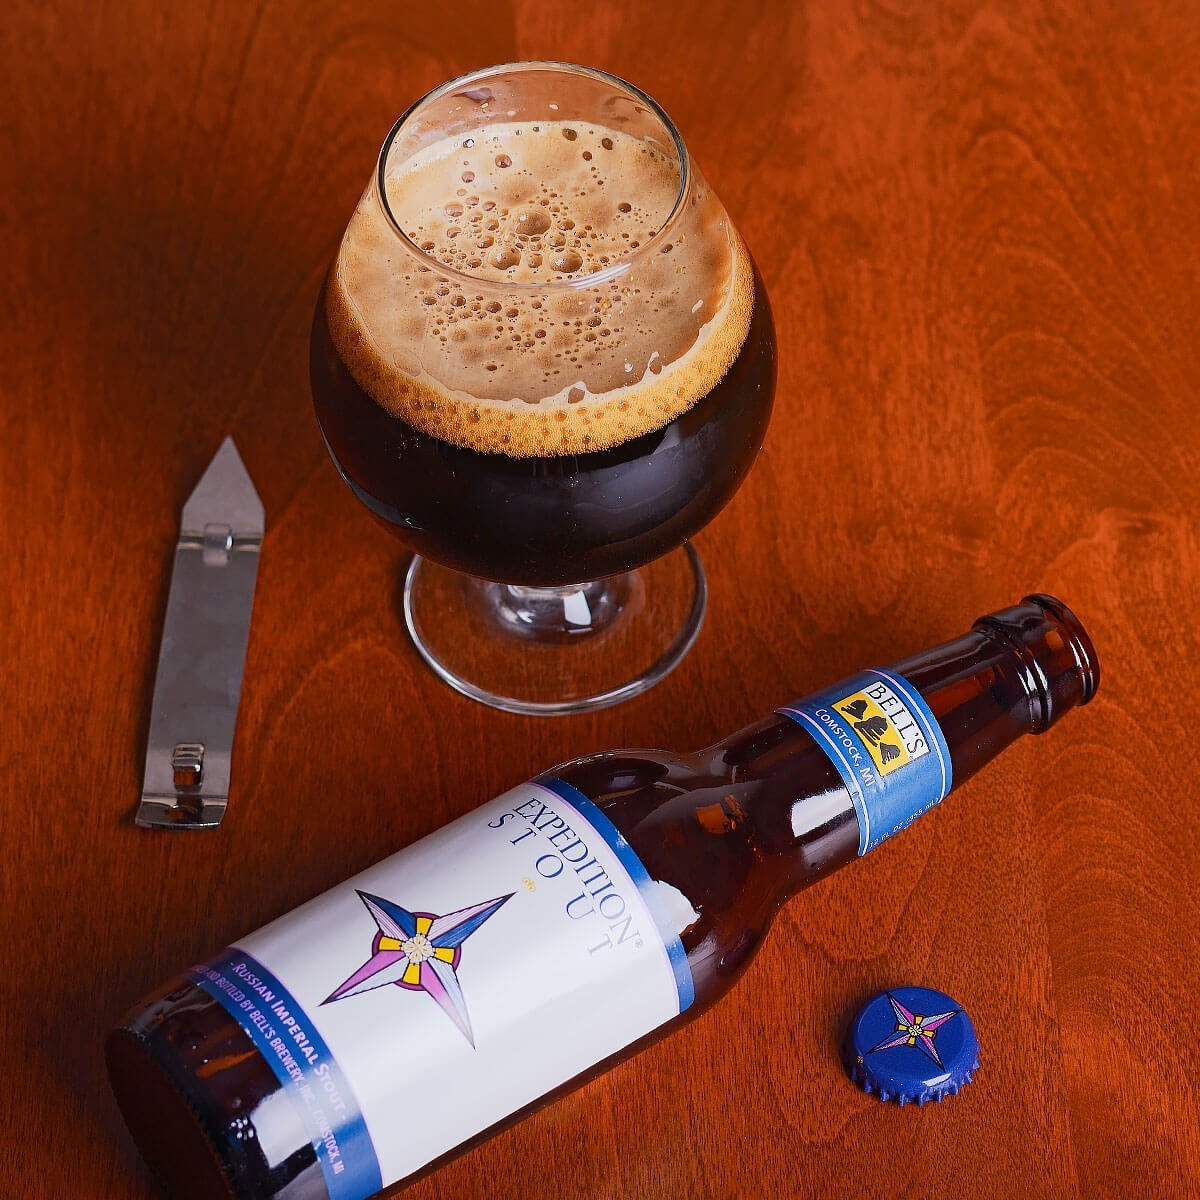 Expedition Stout is a Russian Imperial Stout brewed by Bell's Brewery, Inc. that wonderfully balances roast and sweet flavors with just the right feel and warmth.